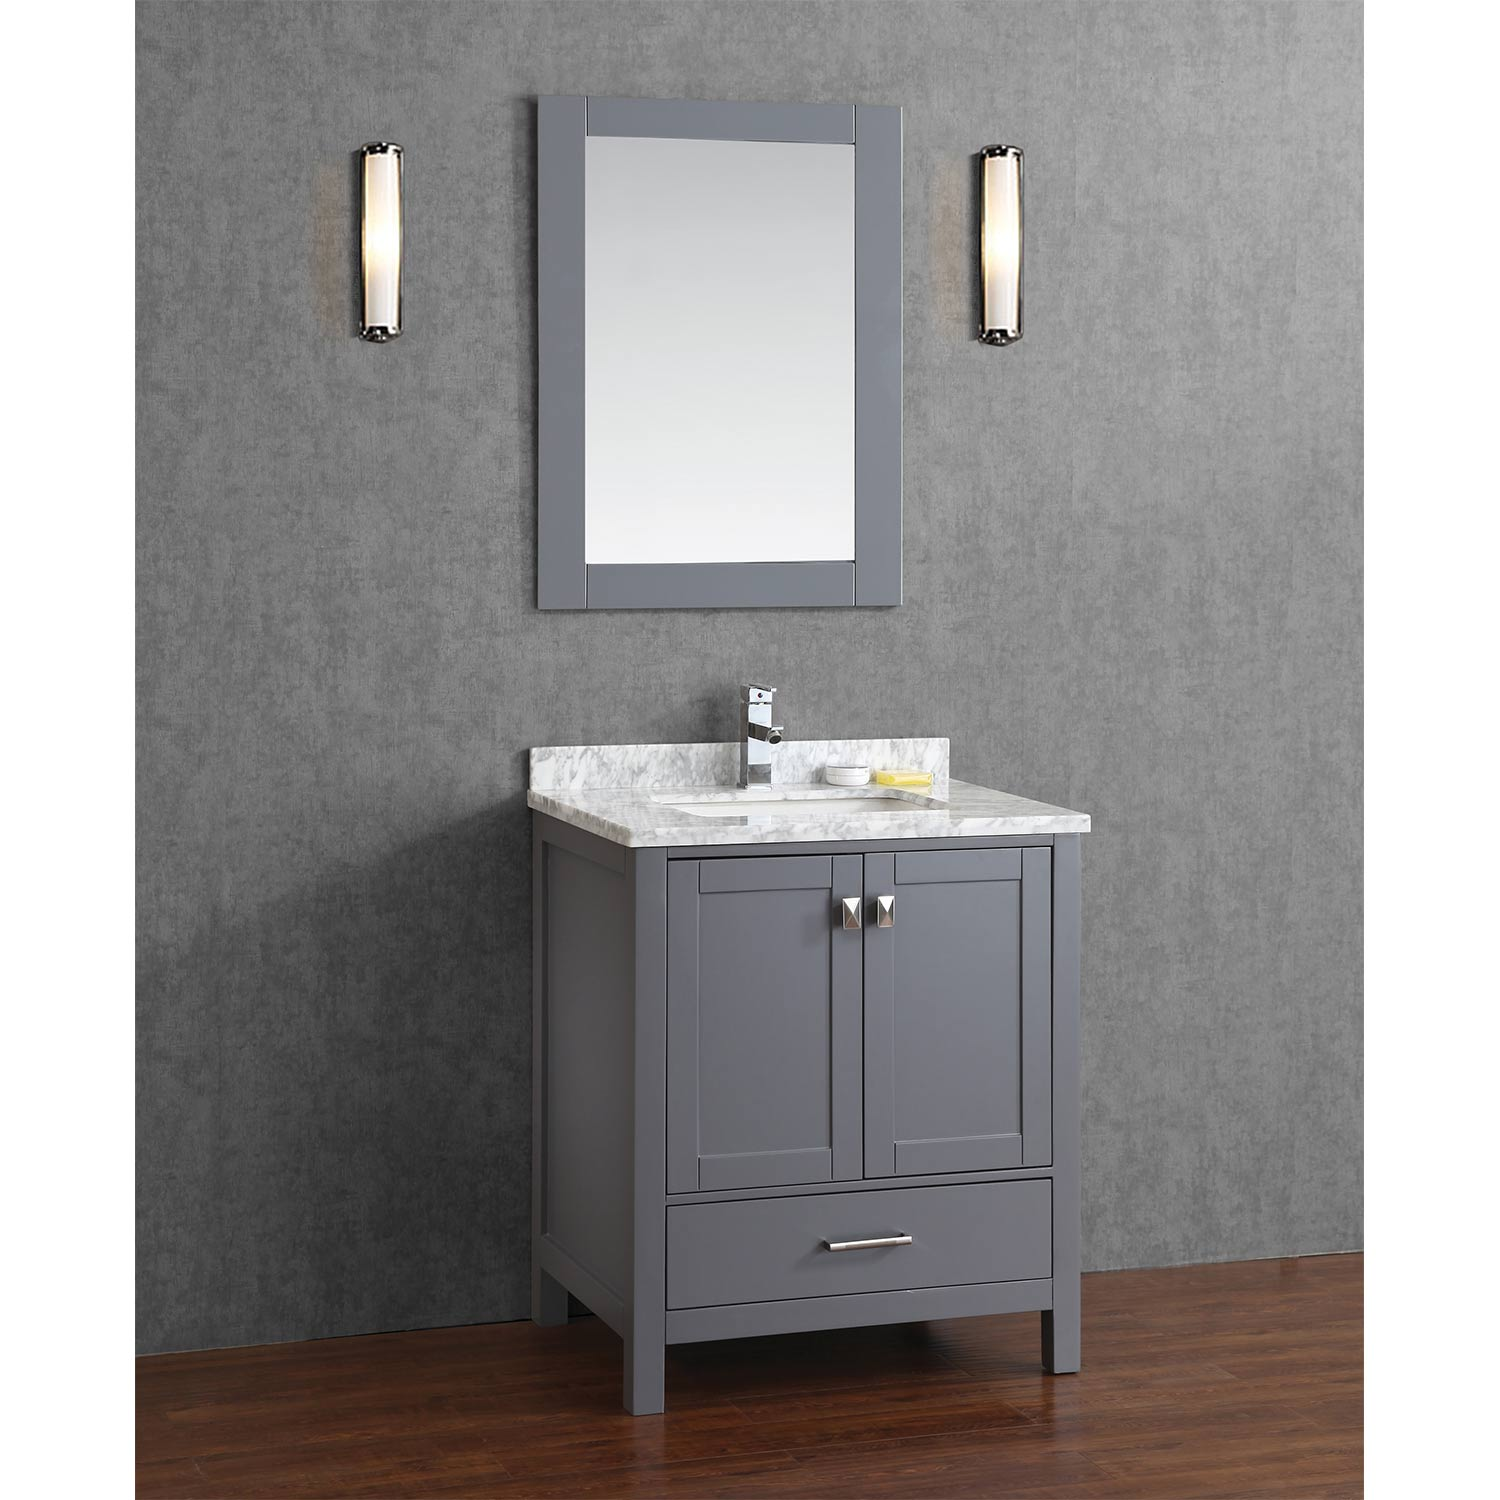 Buy vincent 30 inch solid wood double bathroom vanity in charcoal grey hm 13001 30 wmsq cg Solid wood bathroom vanities cabinets